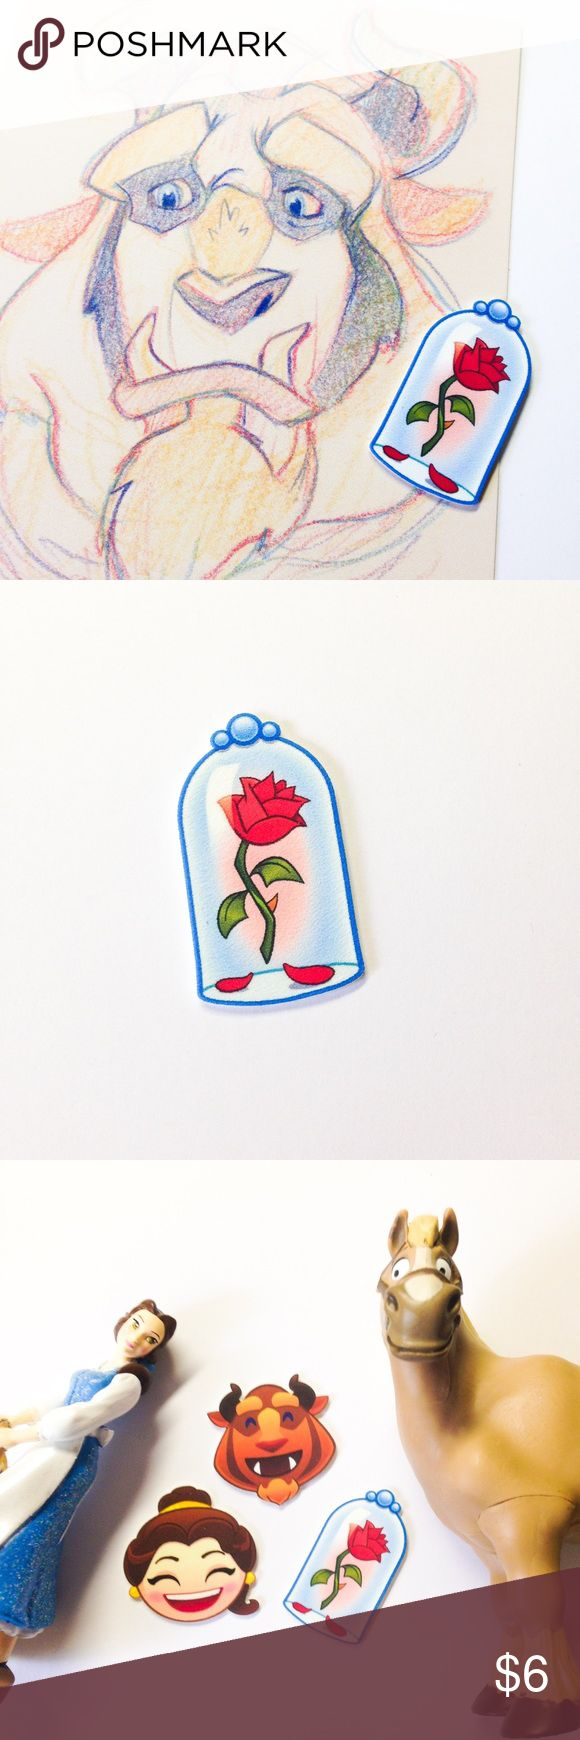 """Enchanted Rose Emoji Pin ***All brooches are 3 for $15, create a bundle and offer $15 - I will accept as soon as I see it, thank you! (Offer applies to all brooches in my closet - mix and match)***  Handmade brooch with an enchanted rose Emoji charm.  We offer 15% off on all bundles. You can """"Add to Bundle"""" to get discount.  Most items listed are ready to ship but if you need something sooner please let us know before ordering.  Thank you for shopping my closet! Magic Main Street Jewelry…"""